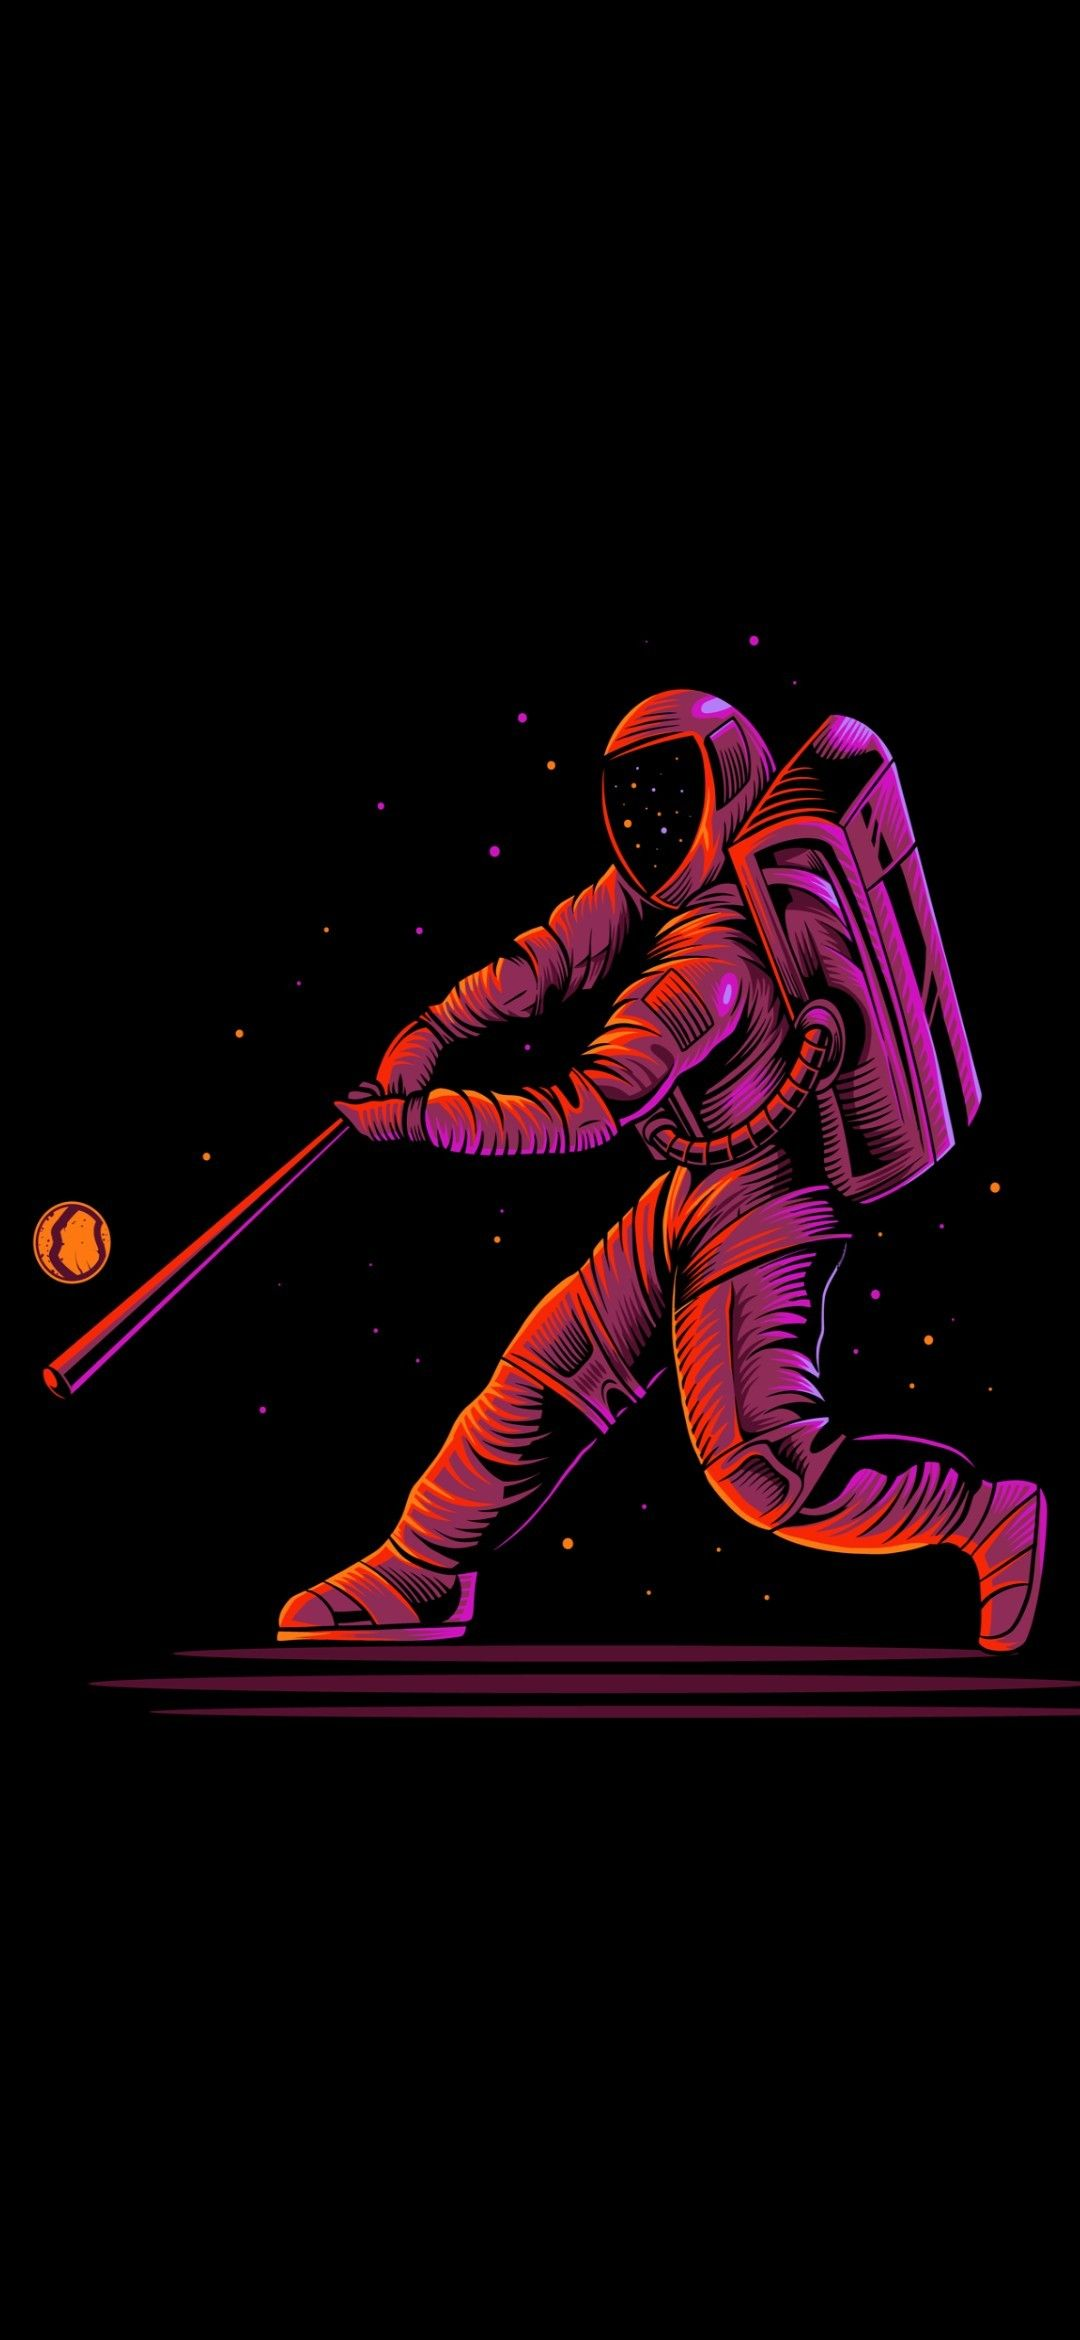 Astronaut Baseball Wallpaper For Mobile Phone Tablet Desktop Computer And Other Devices Hd And 4k Wallpapers In 2021 Baseball Wallpaper Wallpaper Mobile Wallpaper